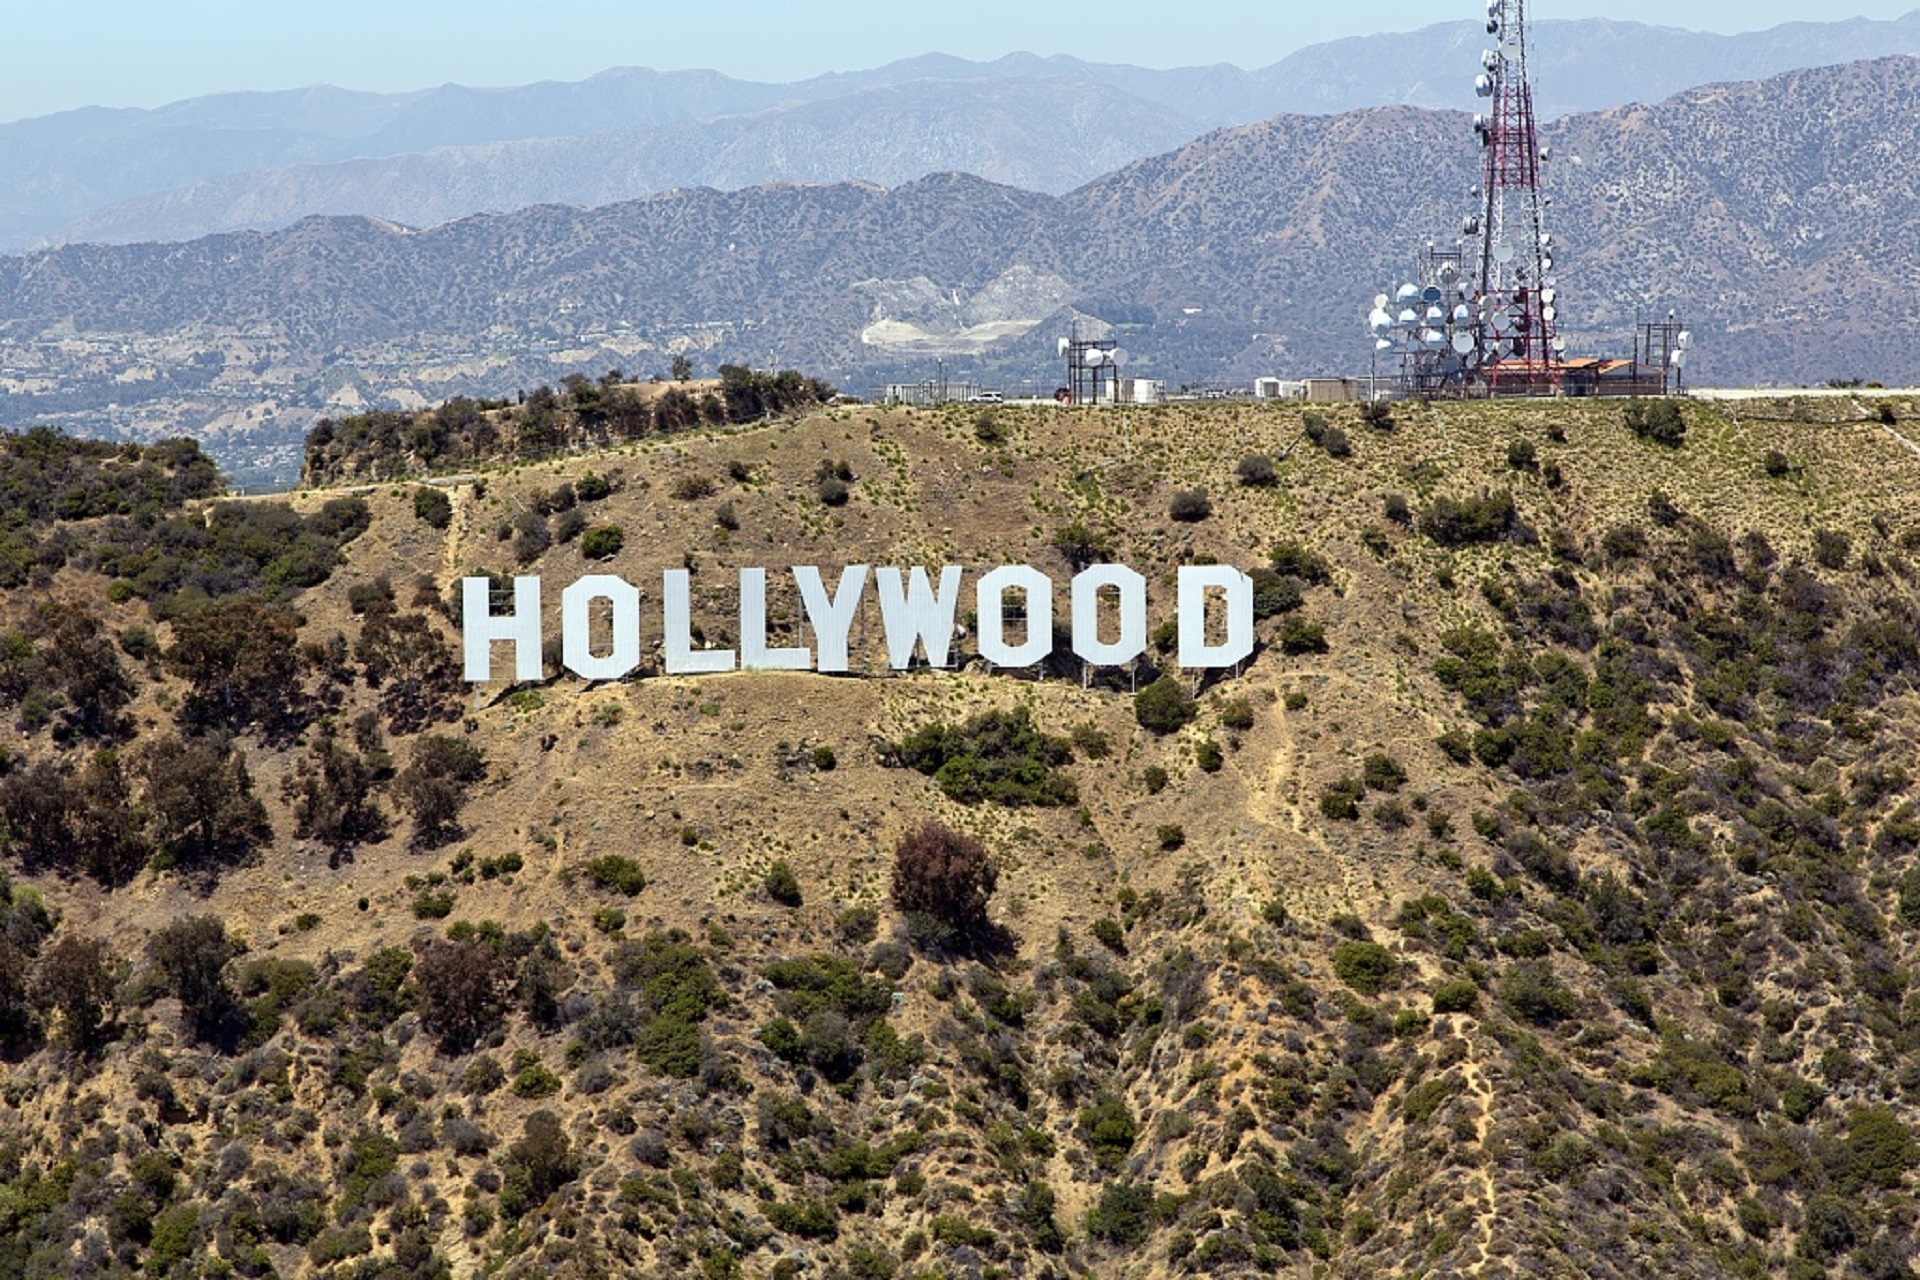 hollywood-sign-754875.jpg